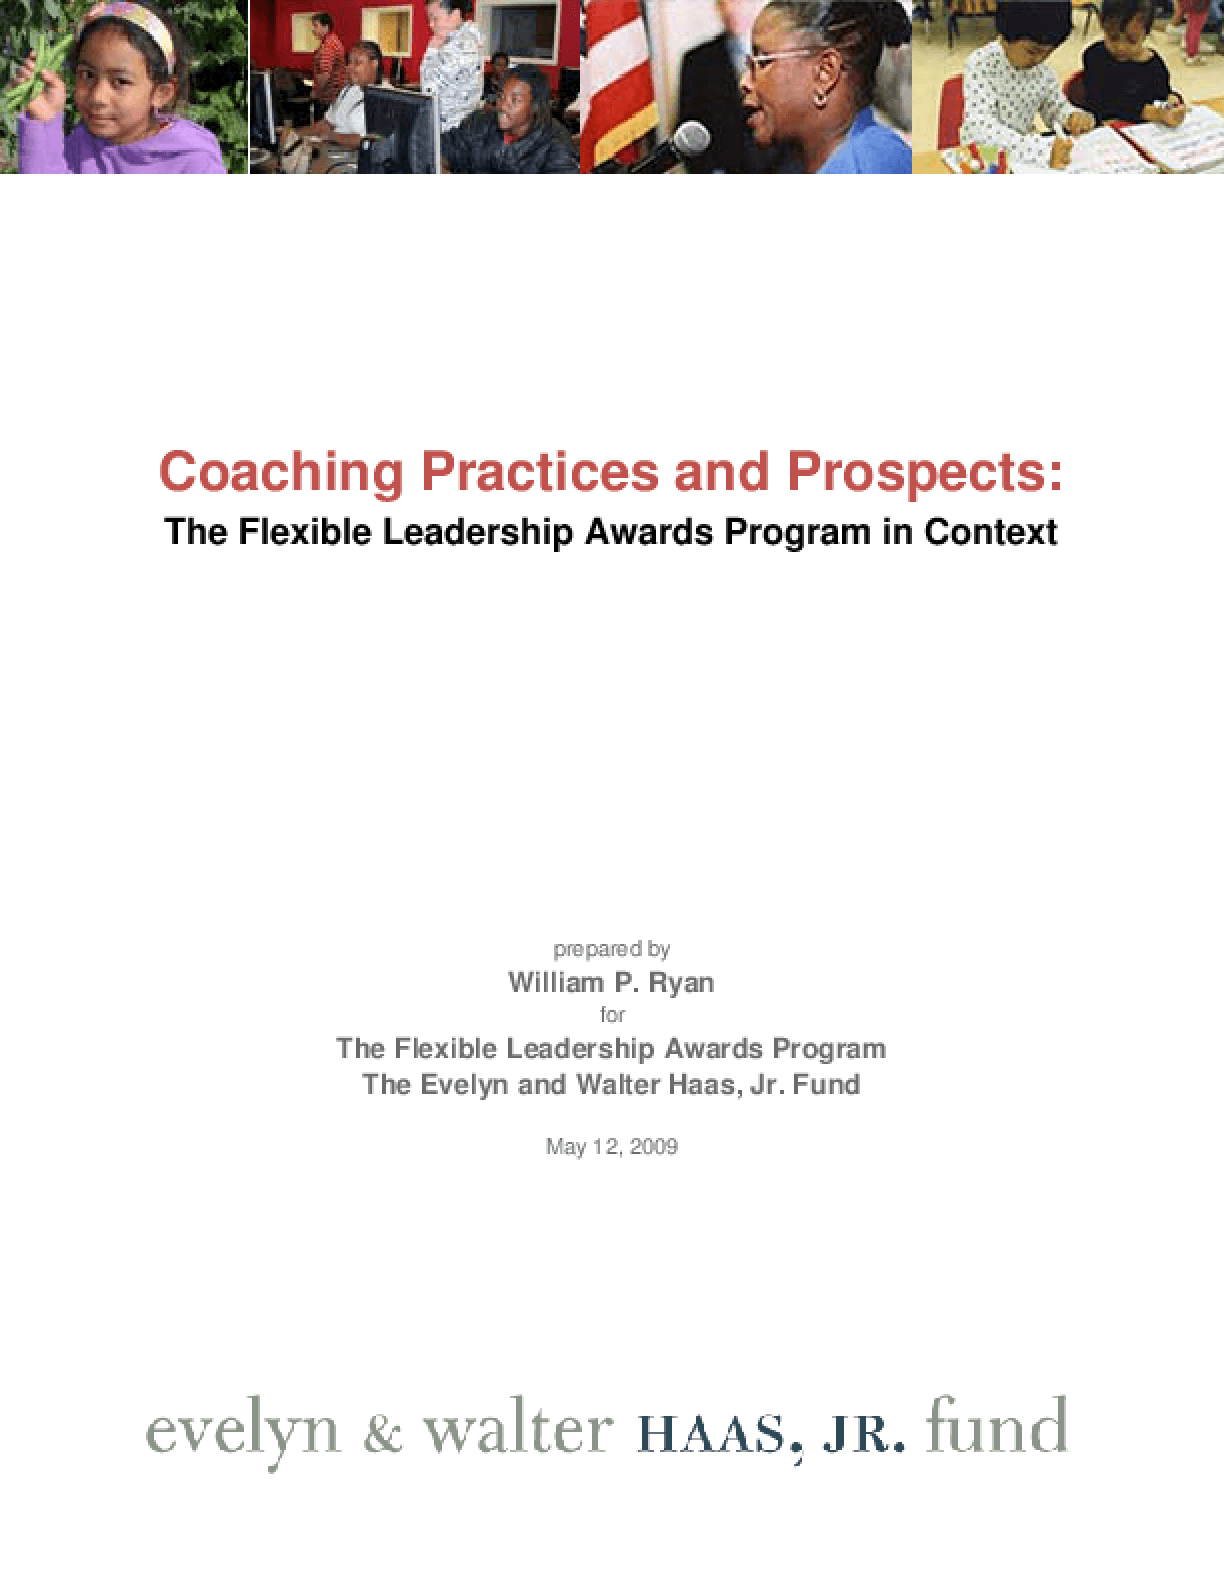 Coaching Practices and Prospects: The Flexible Leadership Awards Program in Context